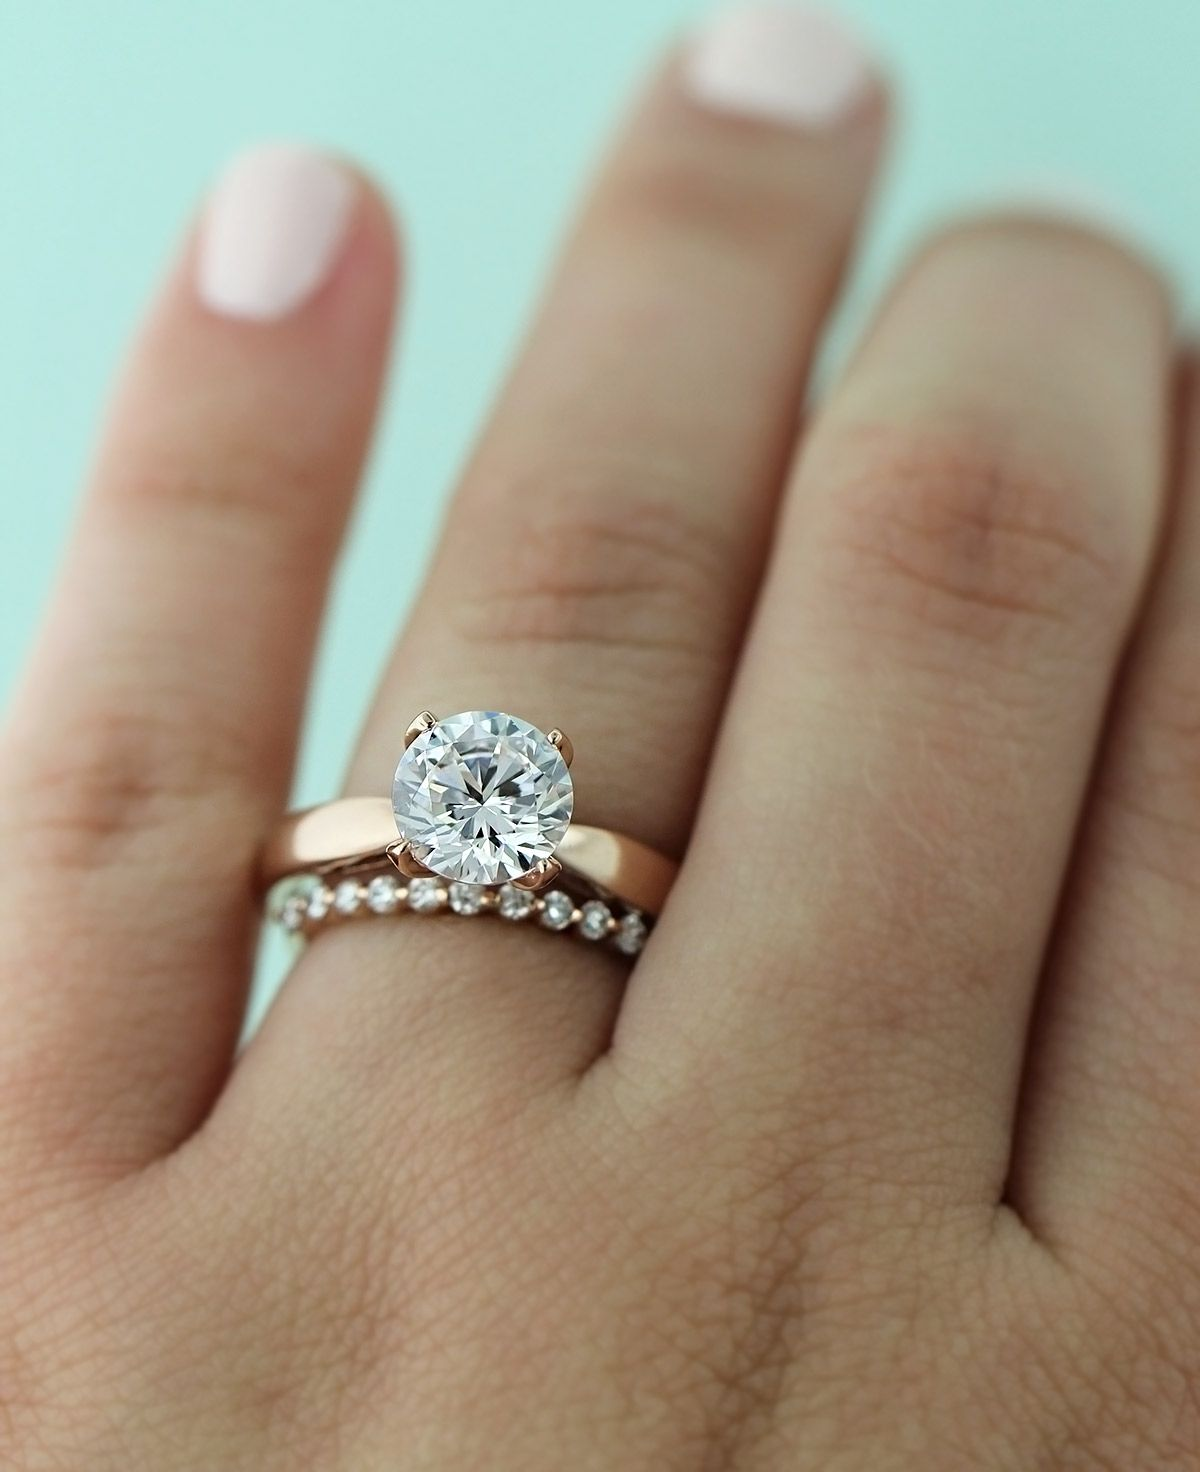 Winter Rose Engagement Ring Wedding jewelry sets